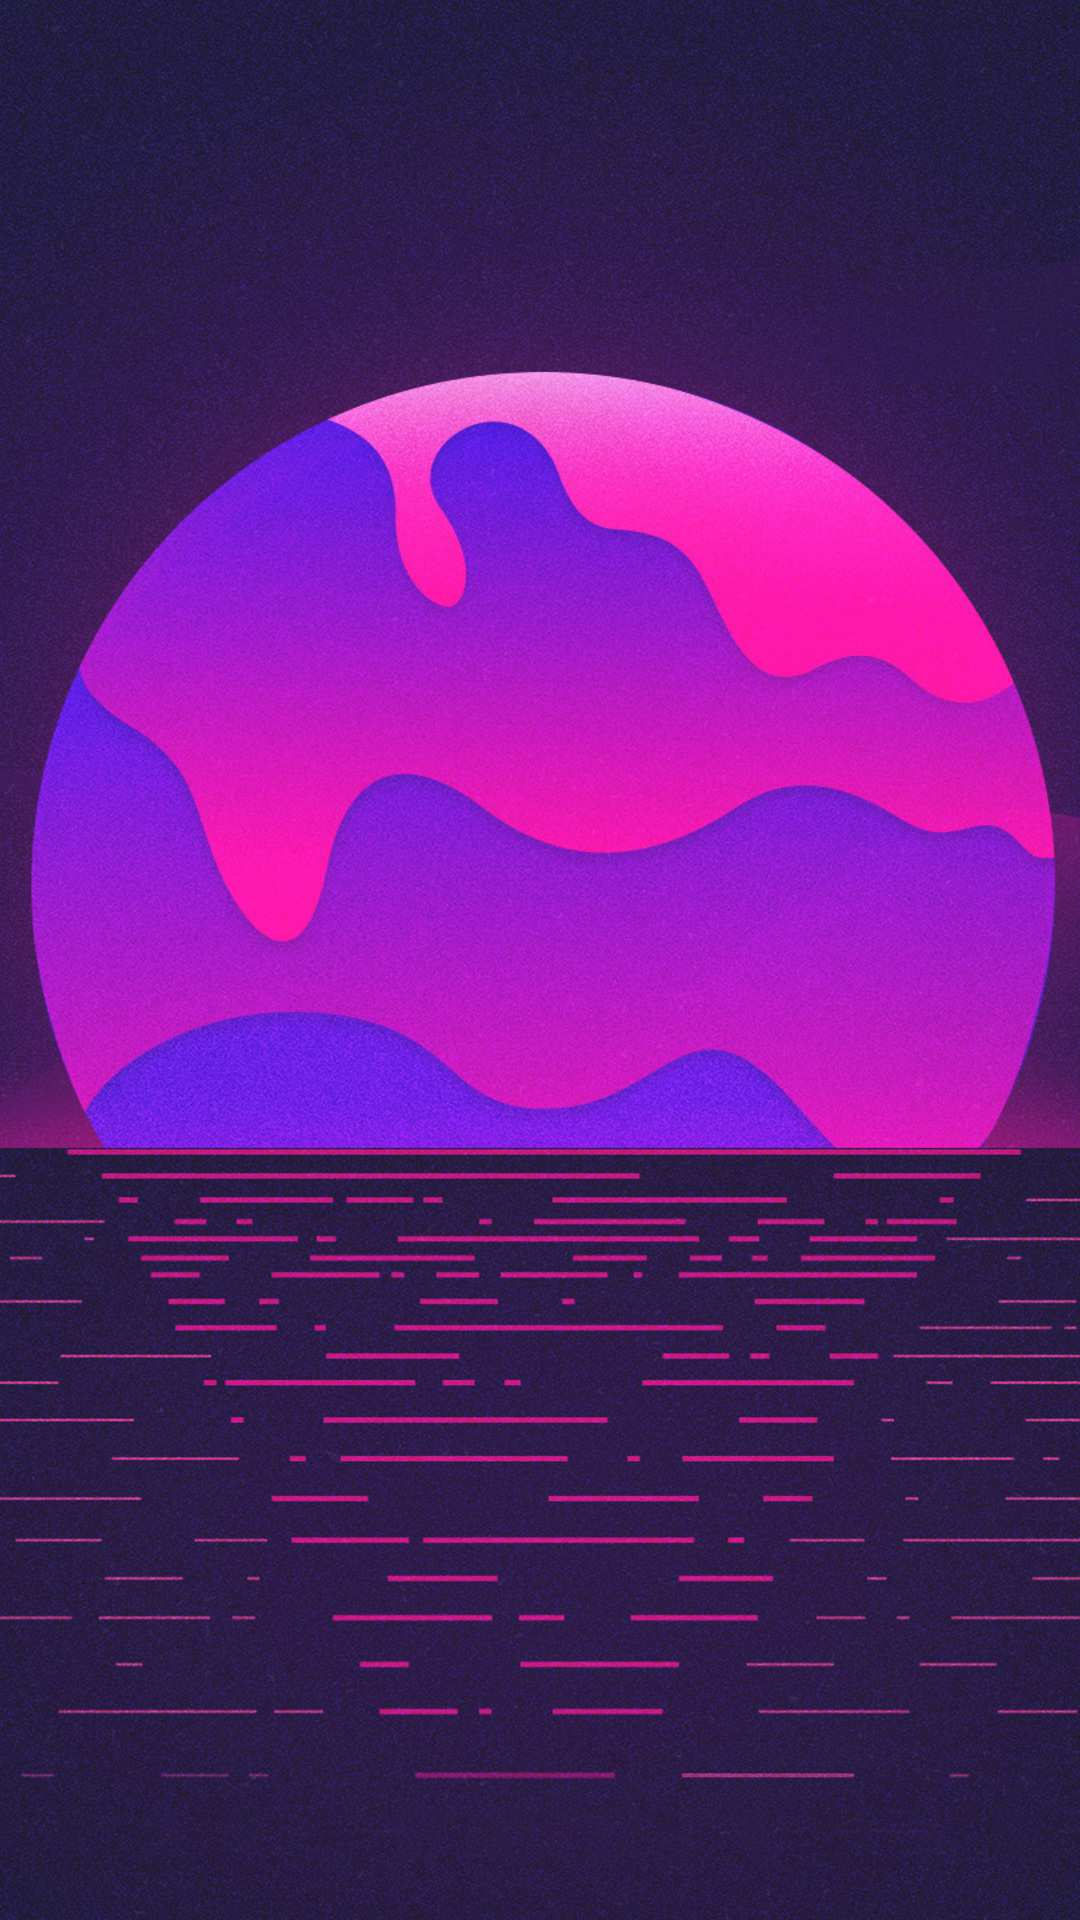 Amoled Sunrise iPhone Wallpaper